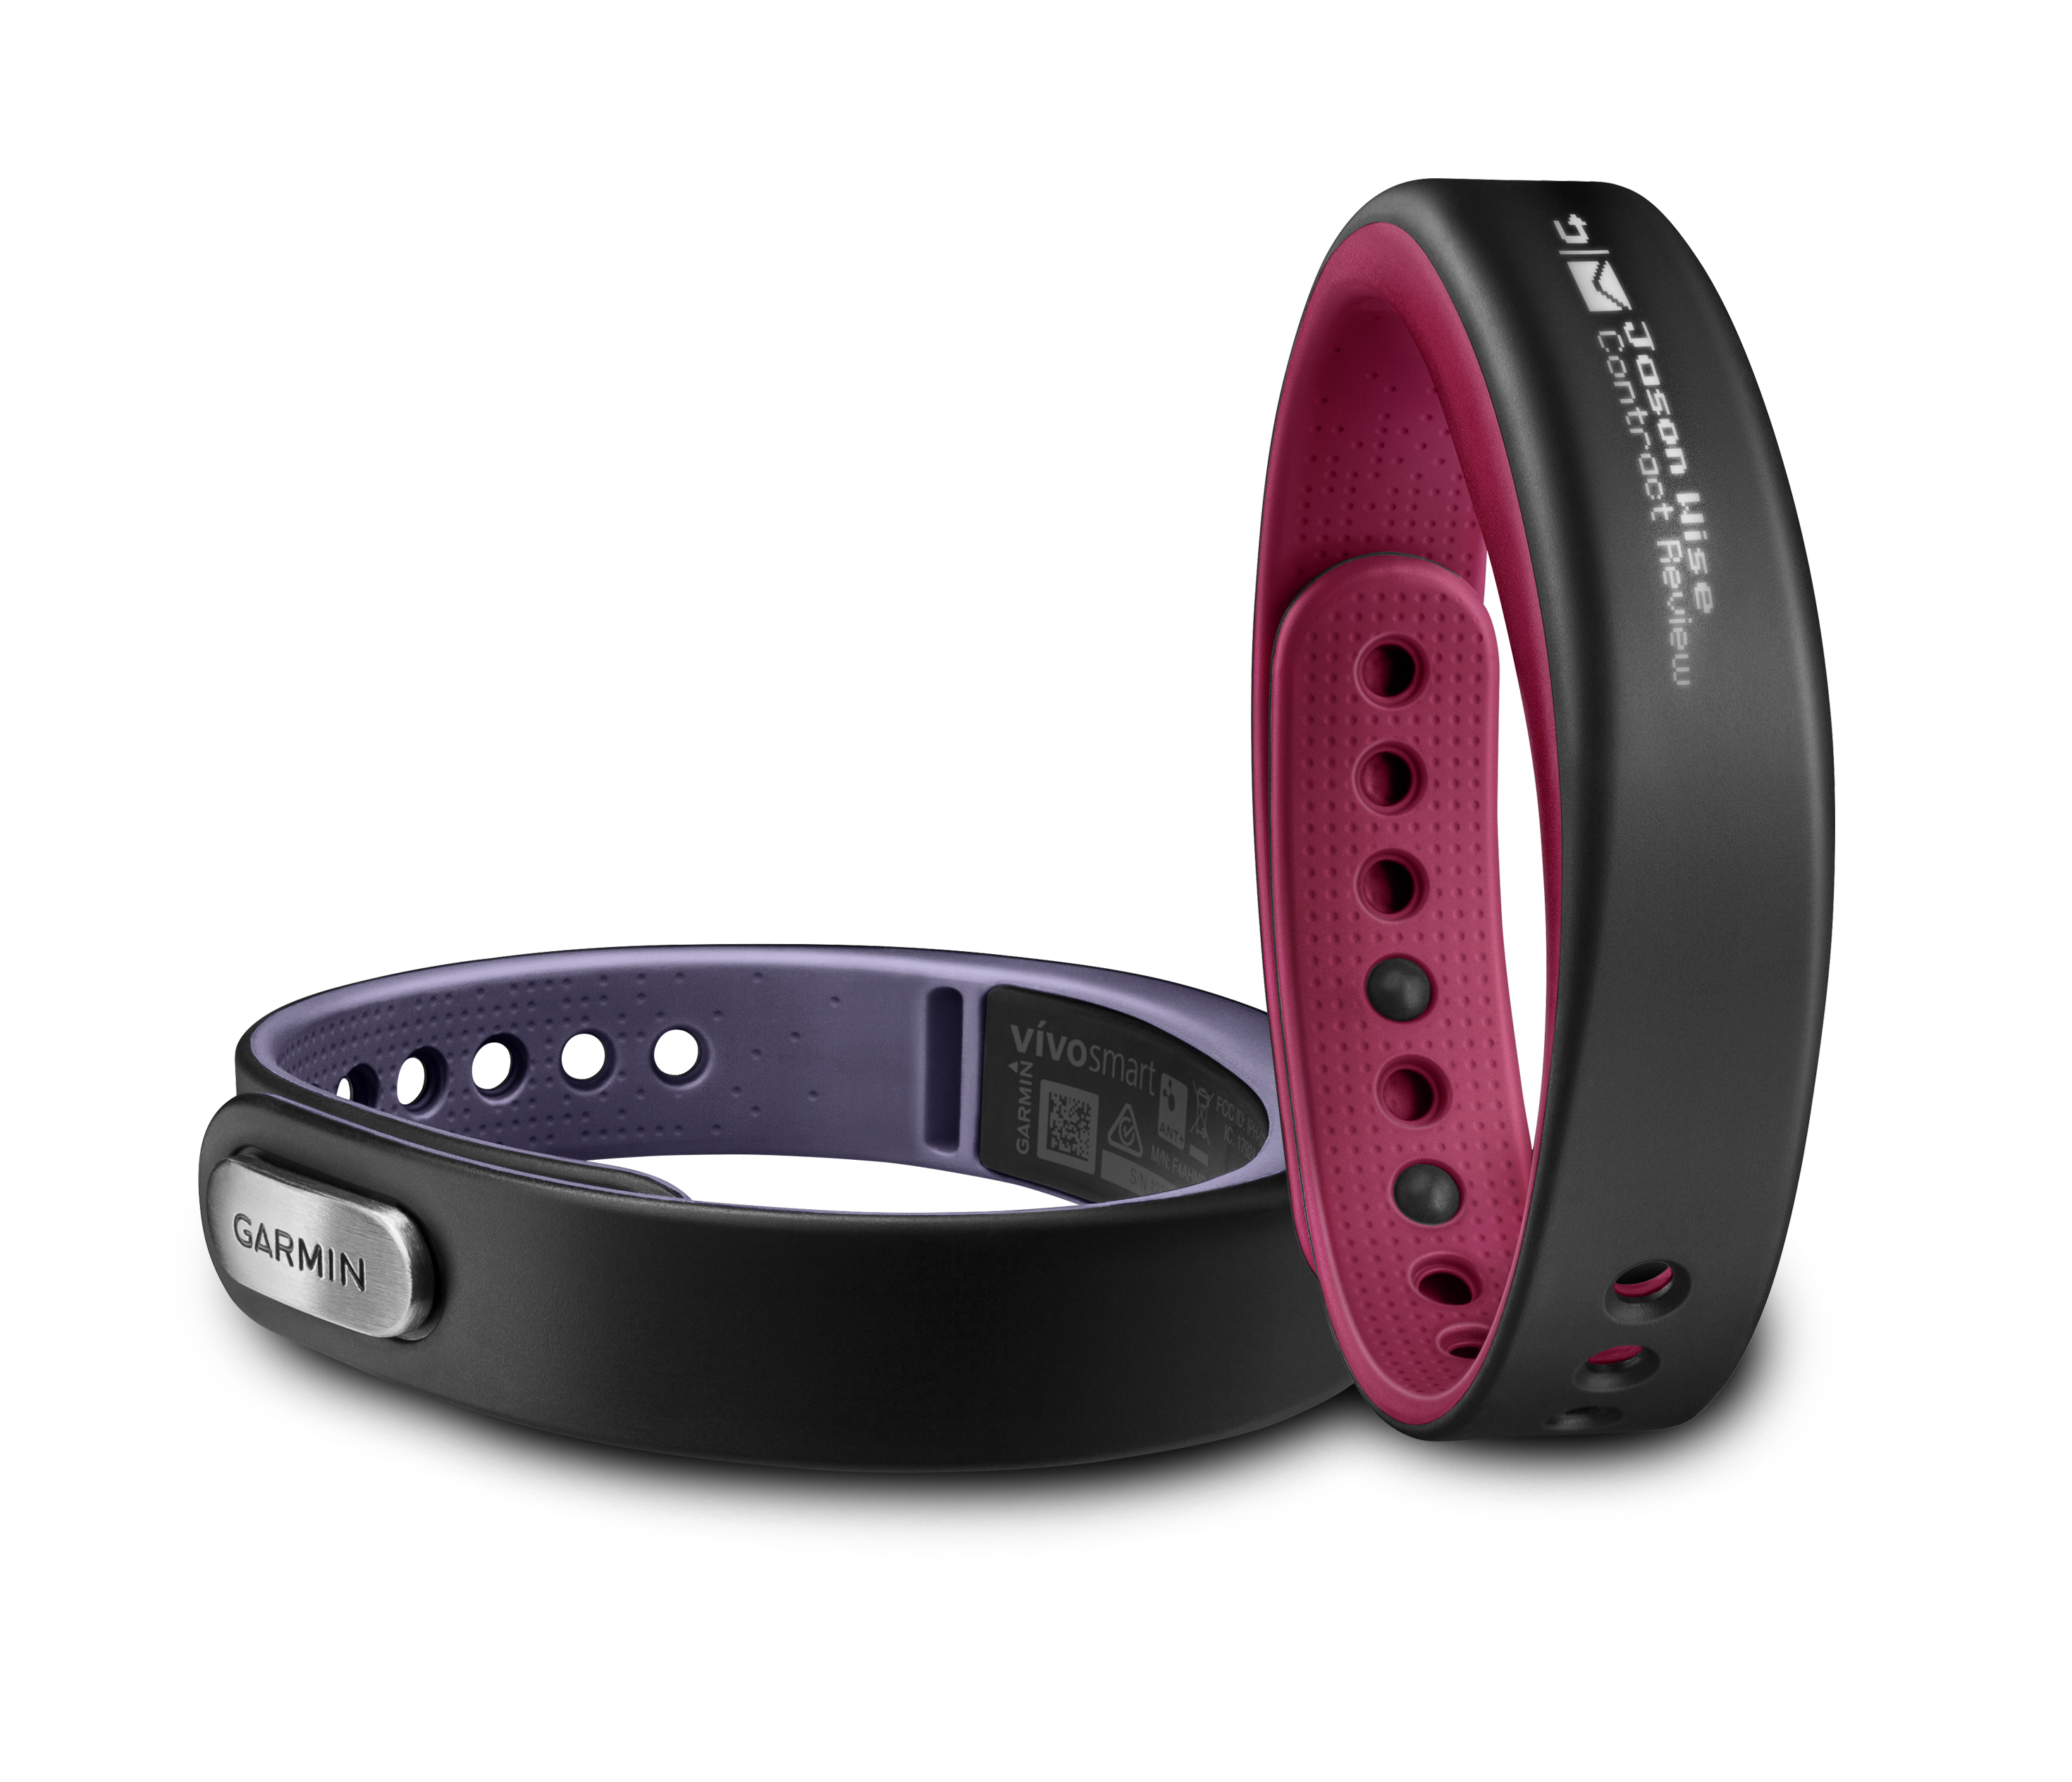 Win one of 3 Vivosmart activity trackers